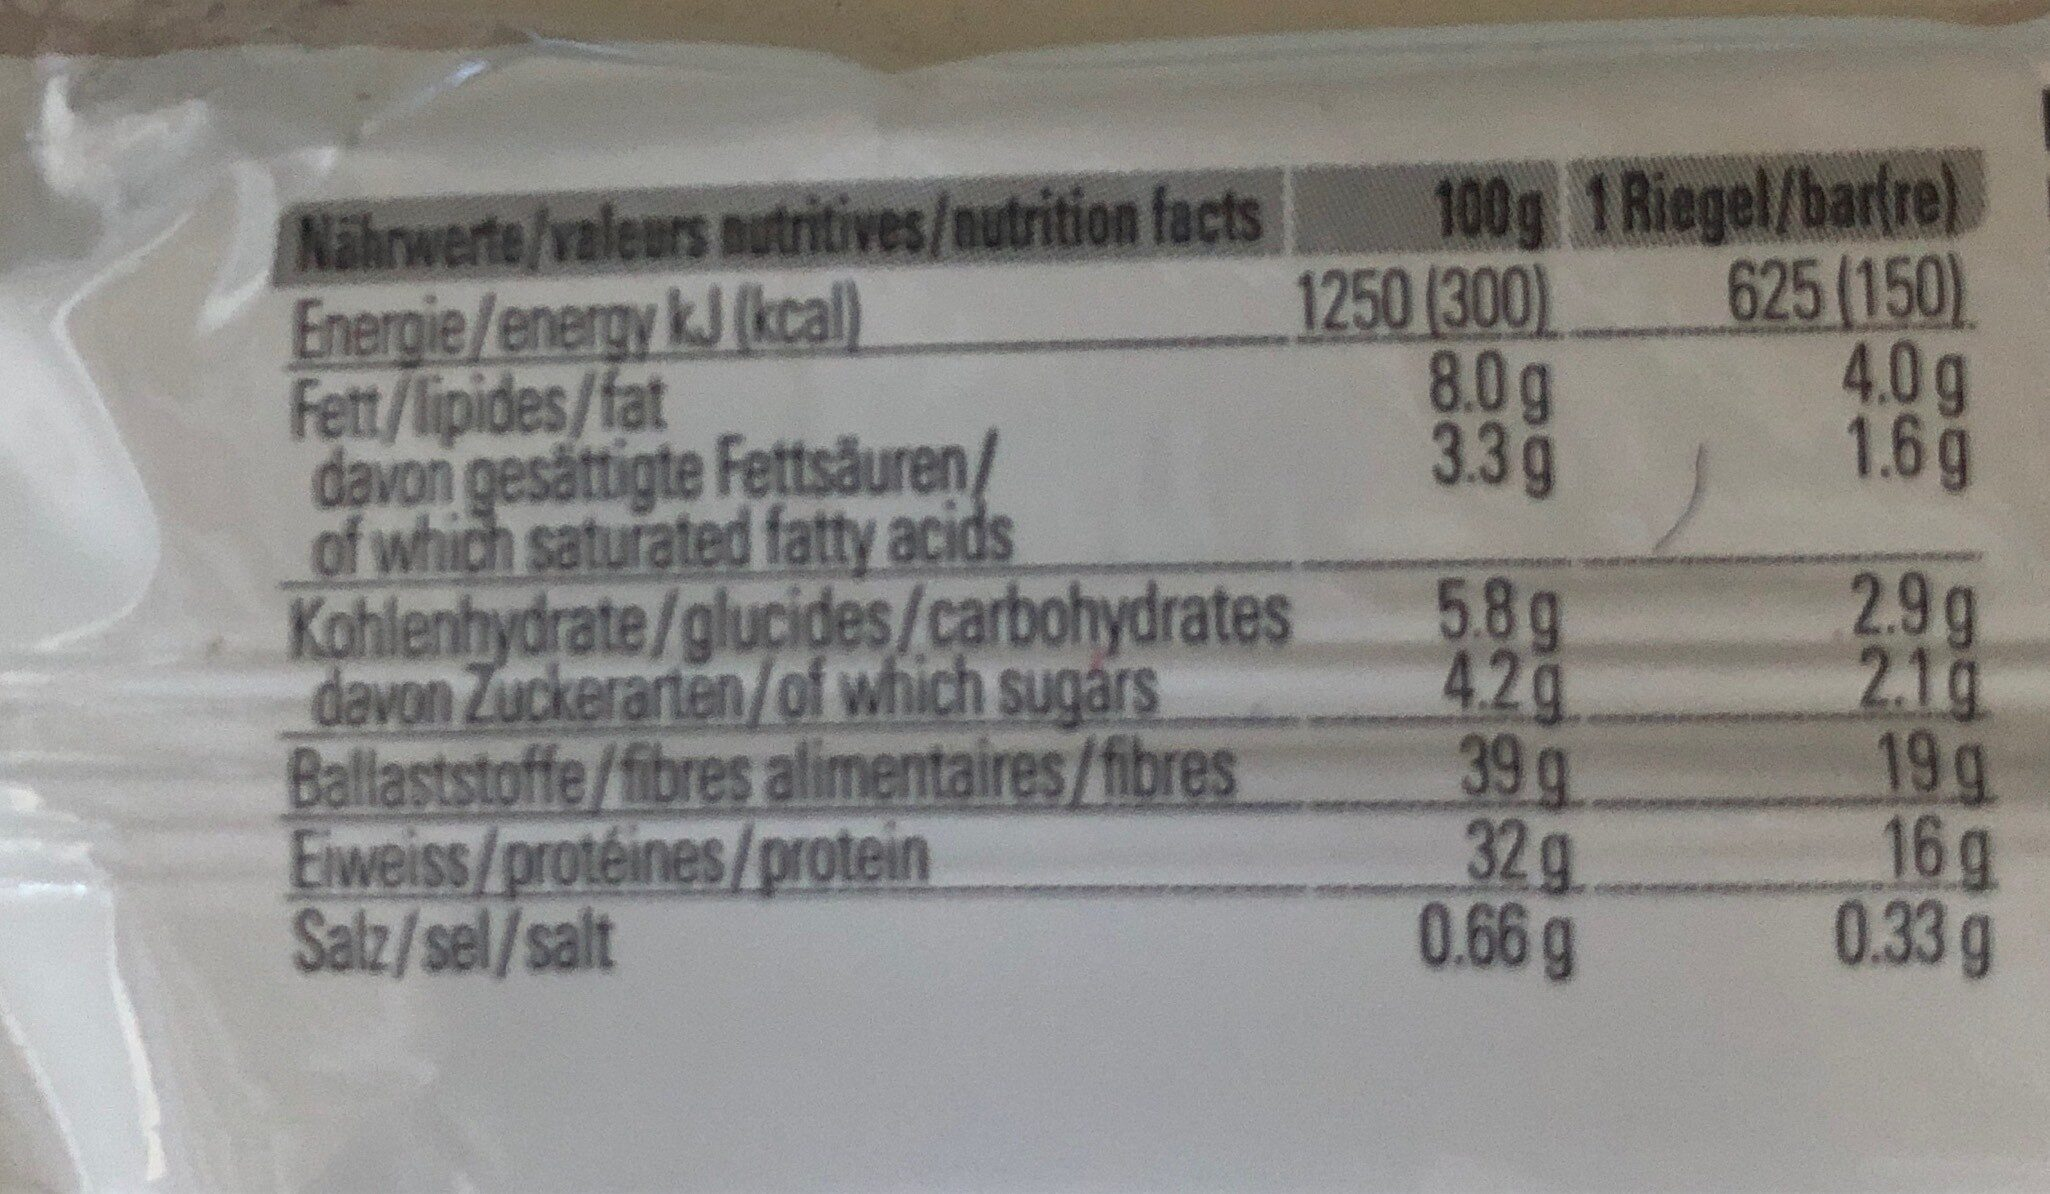 Sponser protein low carb - Nutrition facts - fr